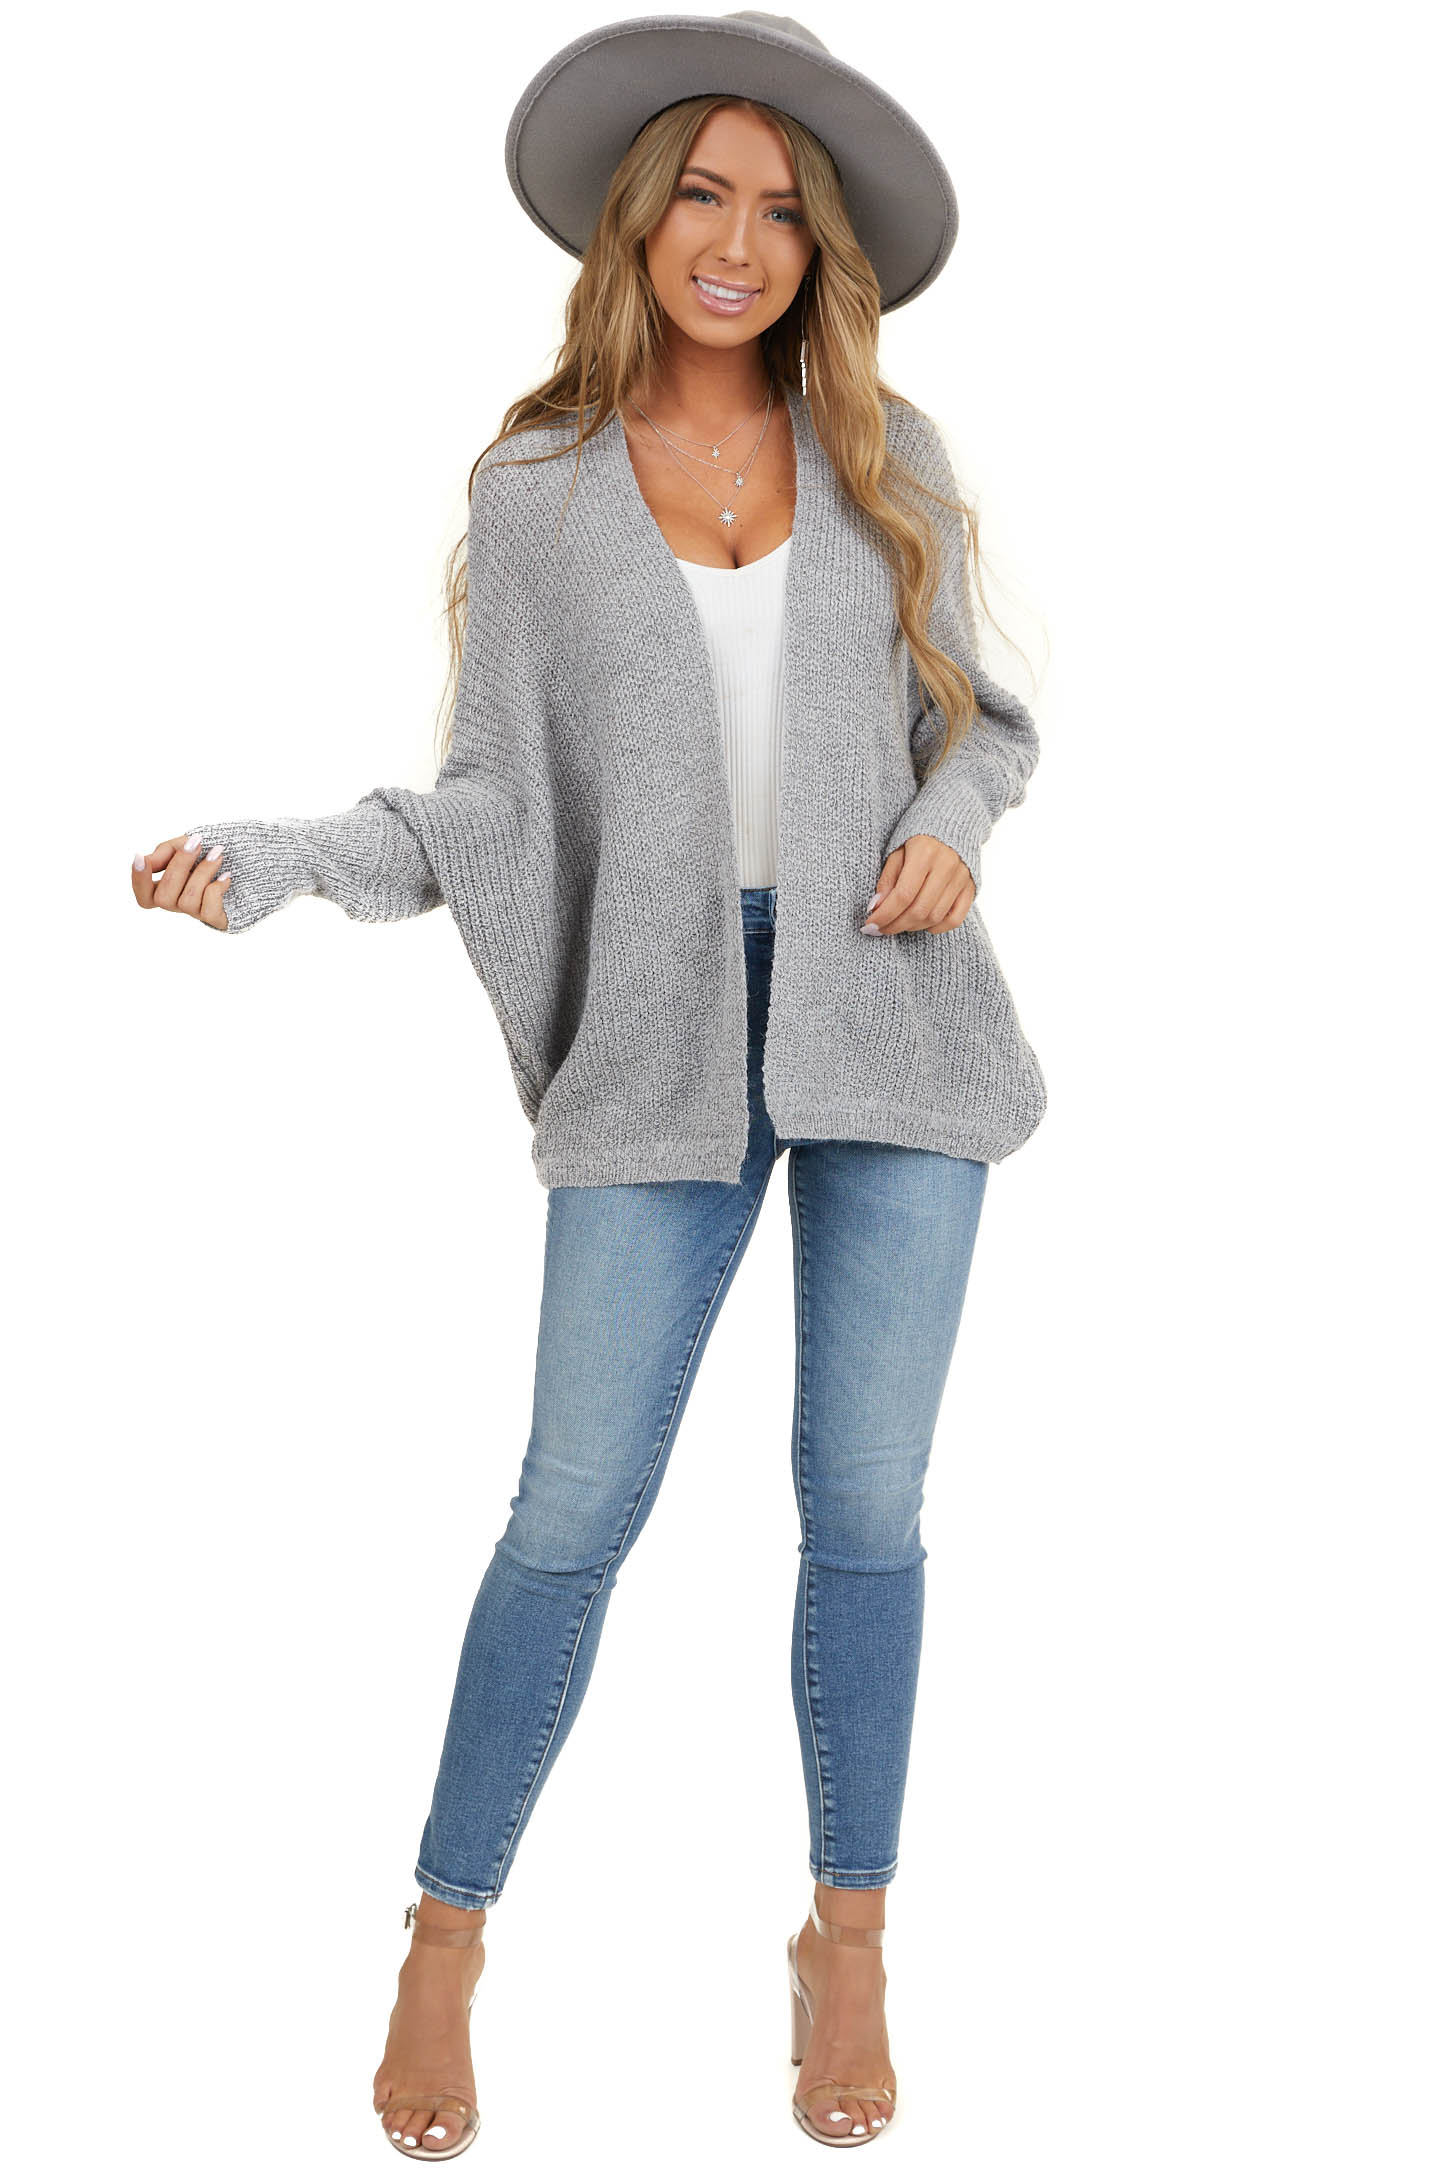 Heather Grey Open Front Cardigan with 3/4 Dolman Sleeves